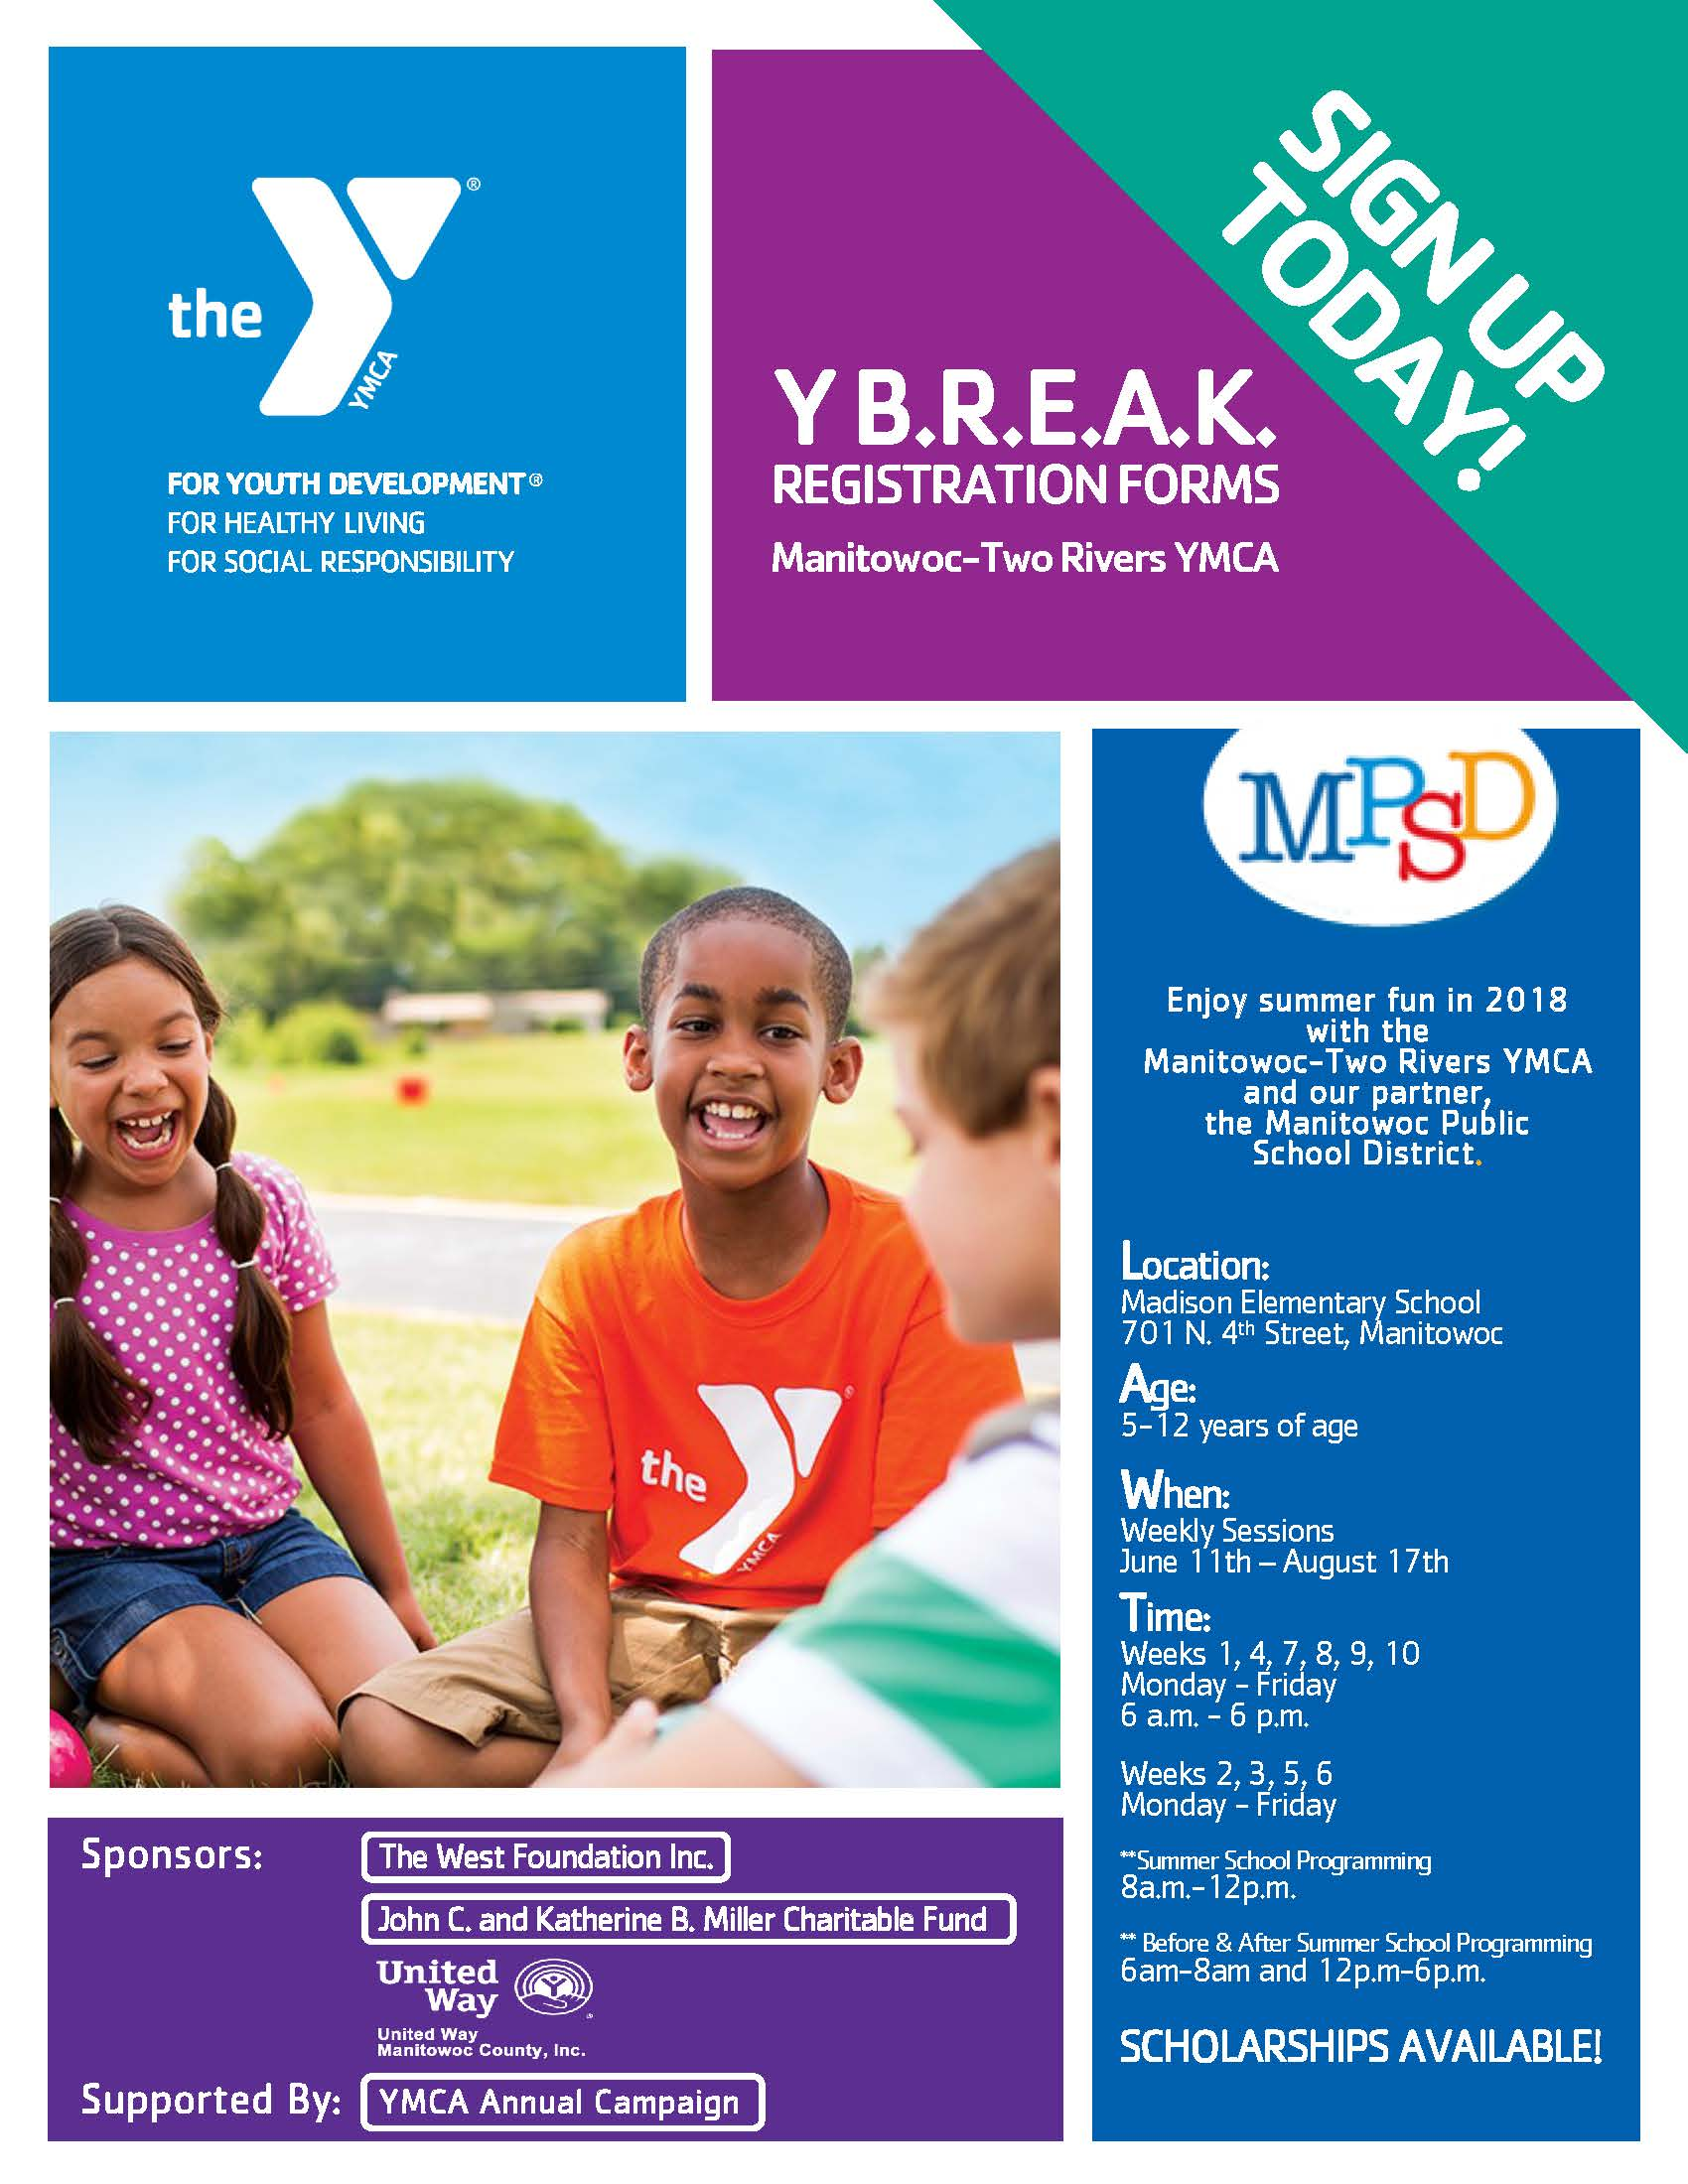 http://mtrymca.org/sites/mtrymca.org/assets/images/programs/Y-BREAK-Registration--2018.jpg